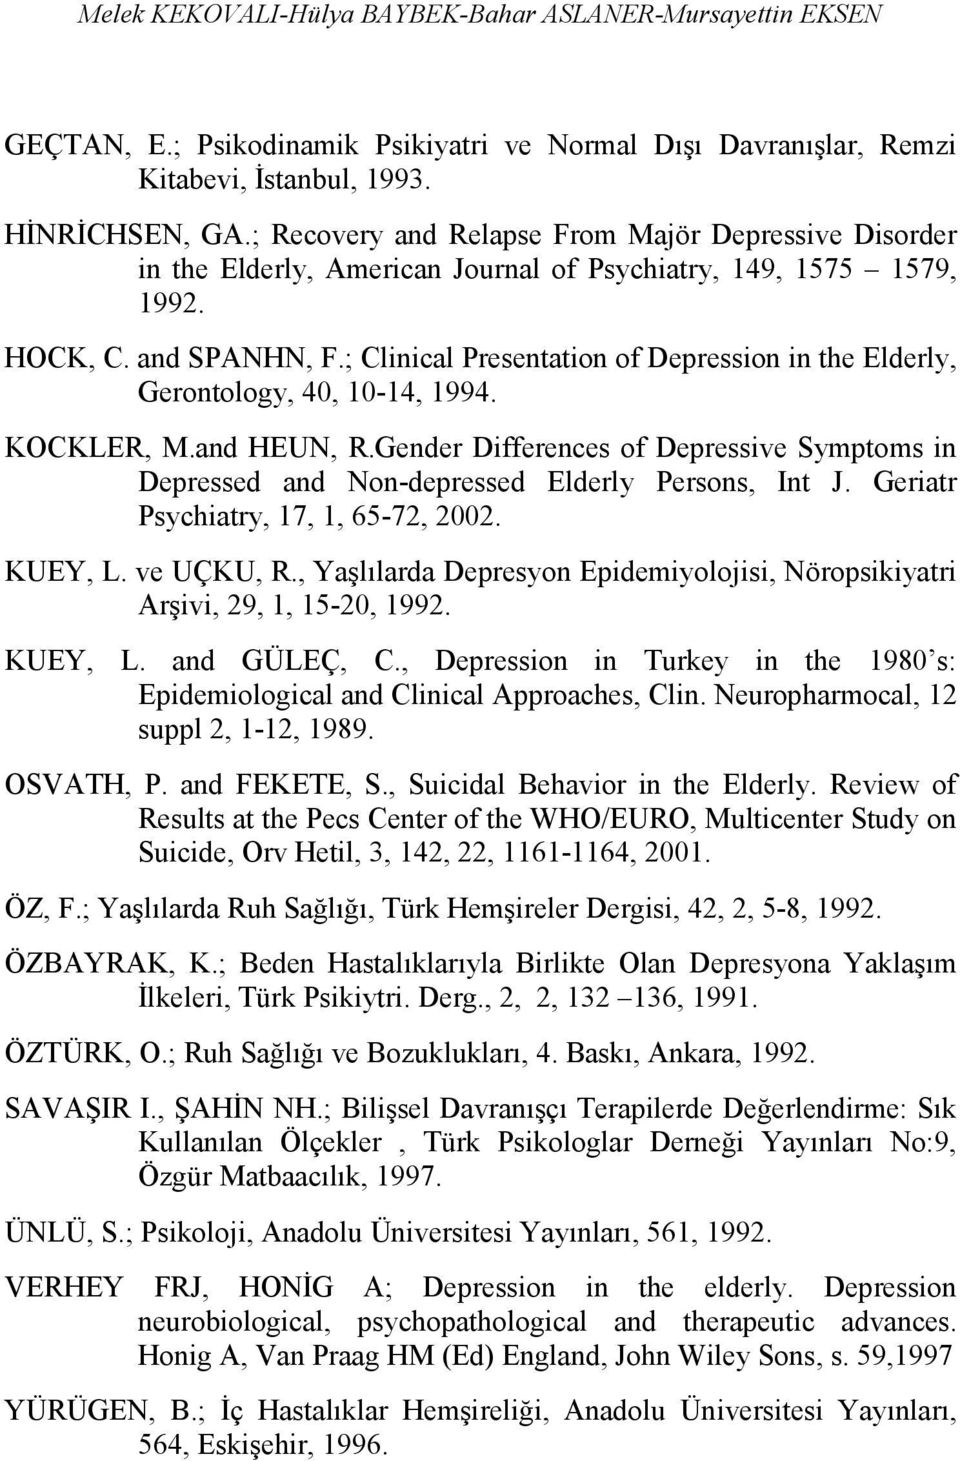 ; Clinical Presentation of Depression in the Elderly, Gerontology, 40, 10-14, 1994. KOCKLER, M.and HEUN, R.